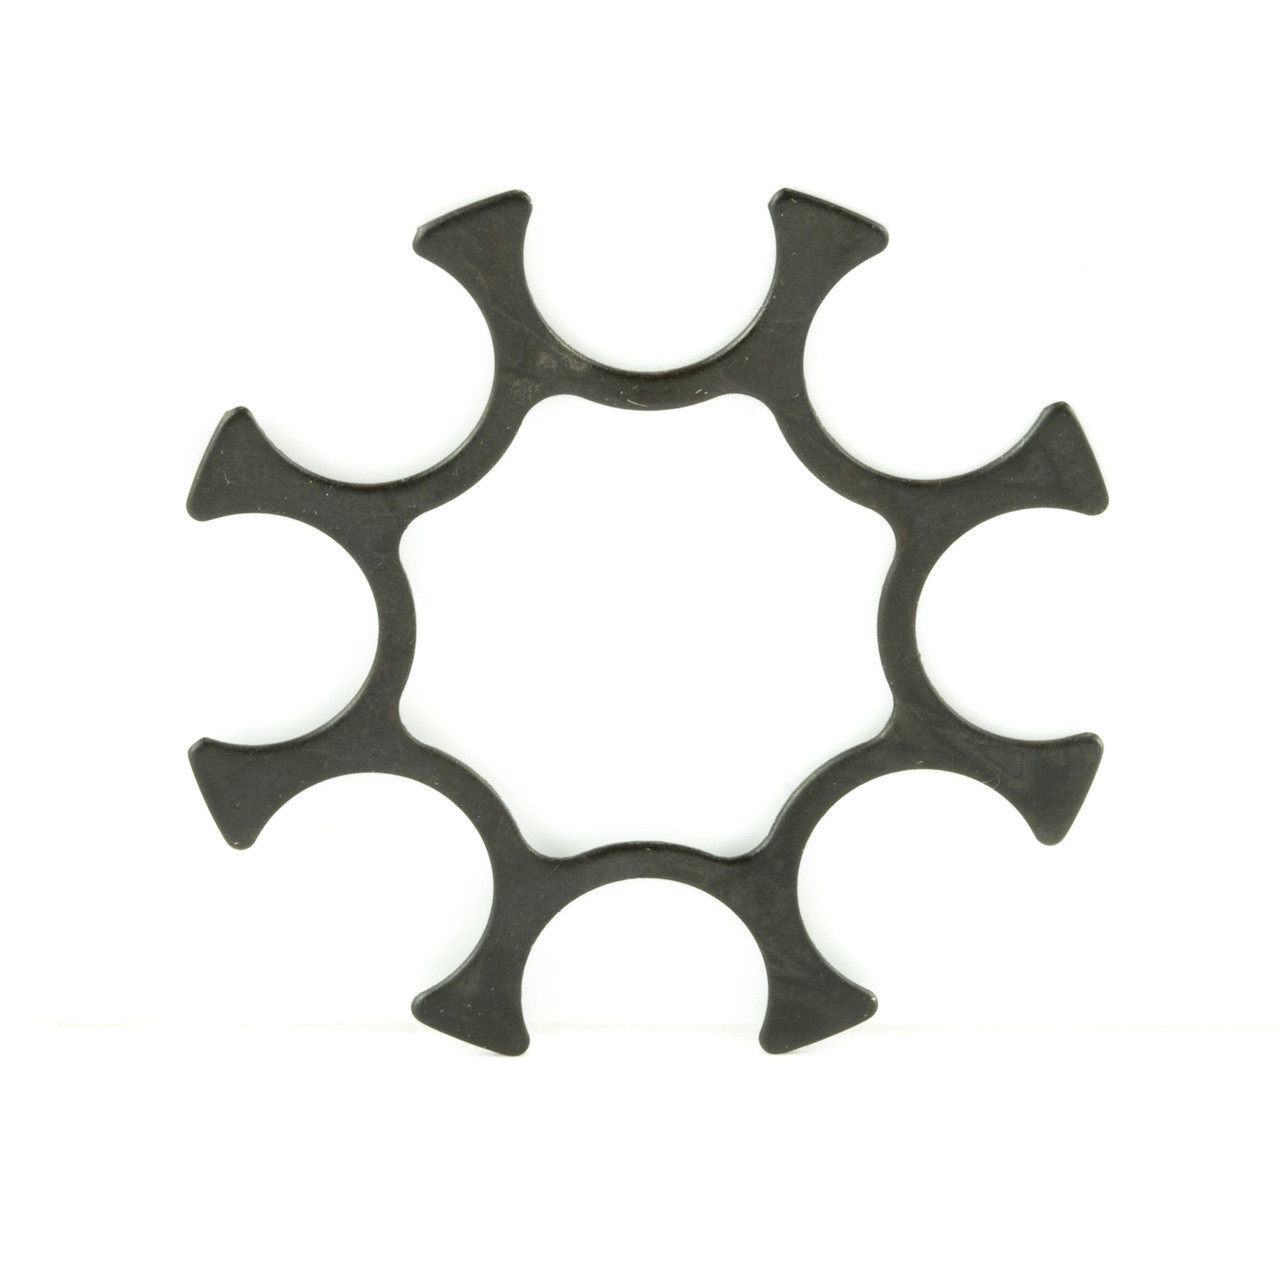 Ranch Products Full Moon Clip 5Rd Ruger LCR 4 Pk FMCRL-4